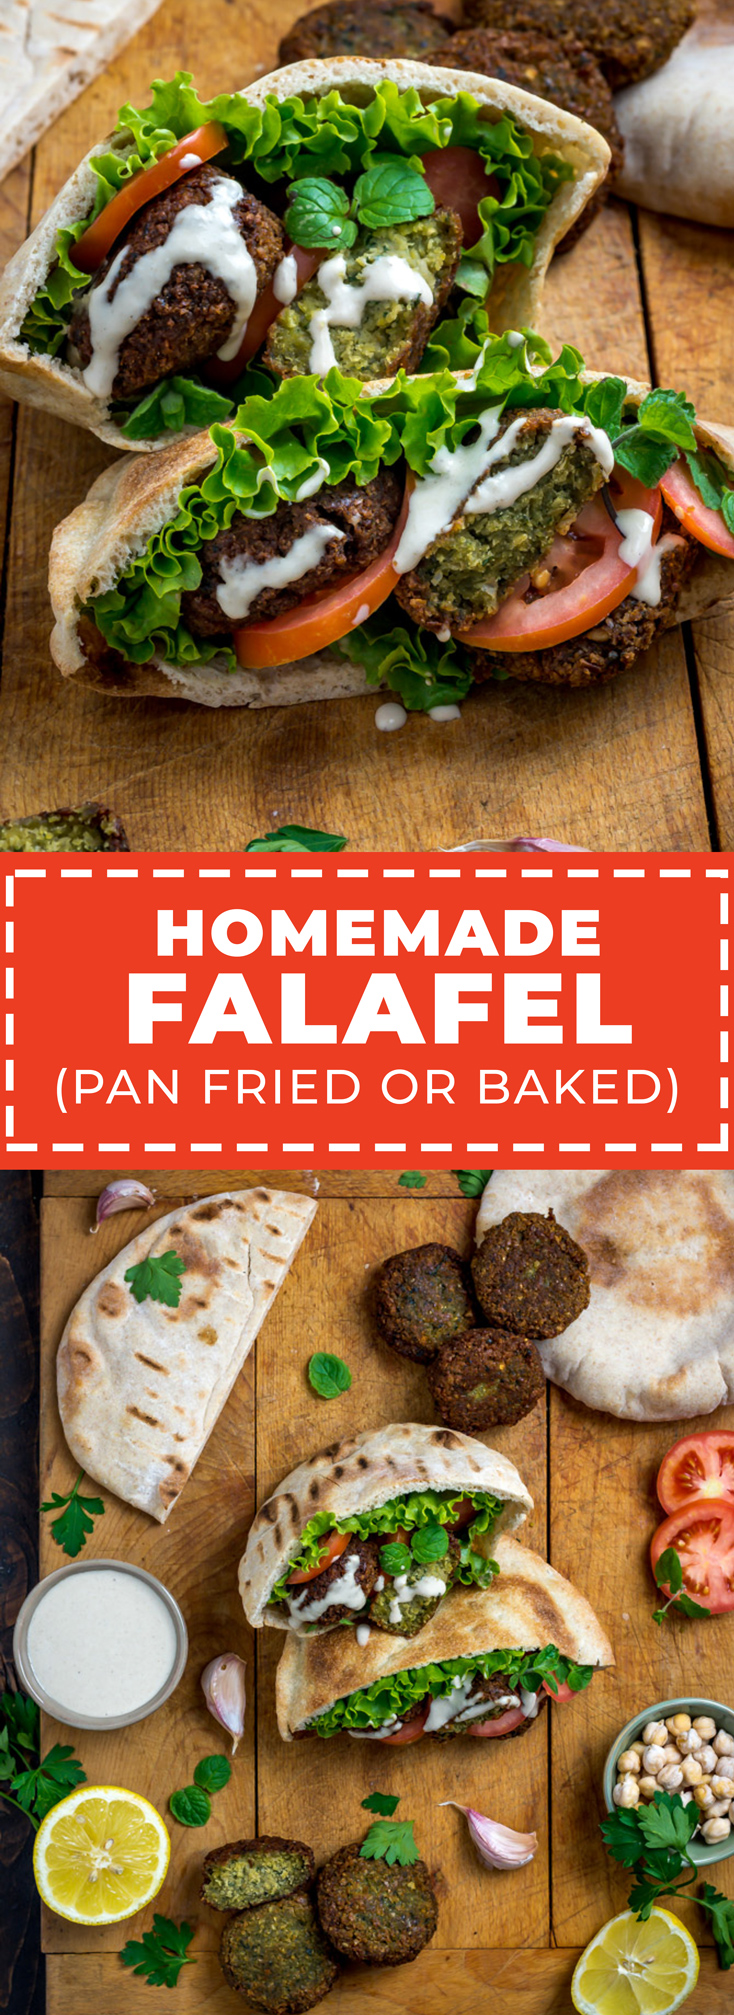 Learn to make Homemade Pan-Fried or Baked Falafel so authentic that your friends will swear you had it flown in from Lebanon. Whichever method you choose, its vibrant fresh herbs, punchy seasoning blend, and crispy-yet-tender will be the star of any sandwich or mezze board. | hostthetoast.com